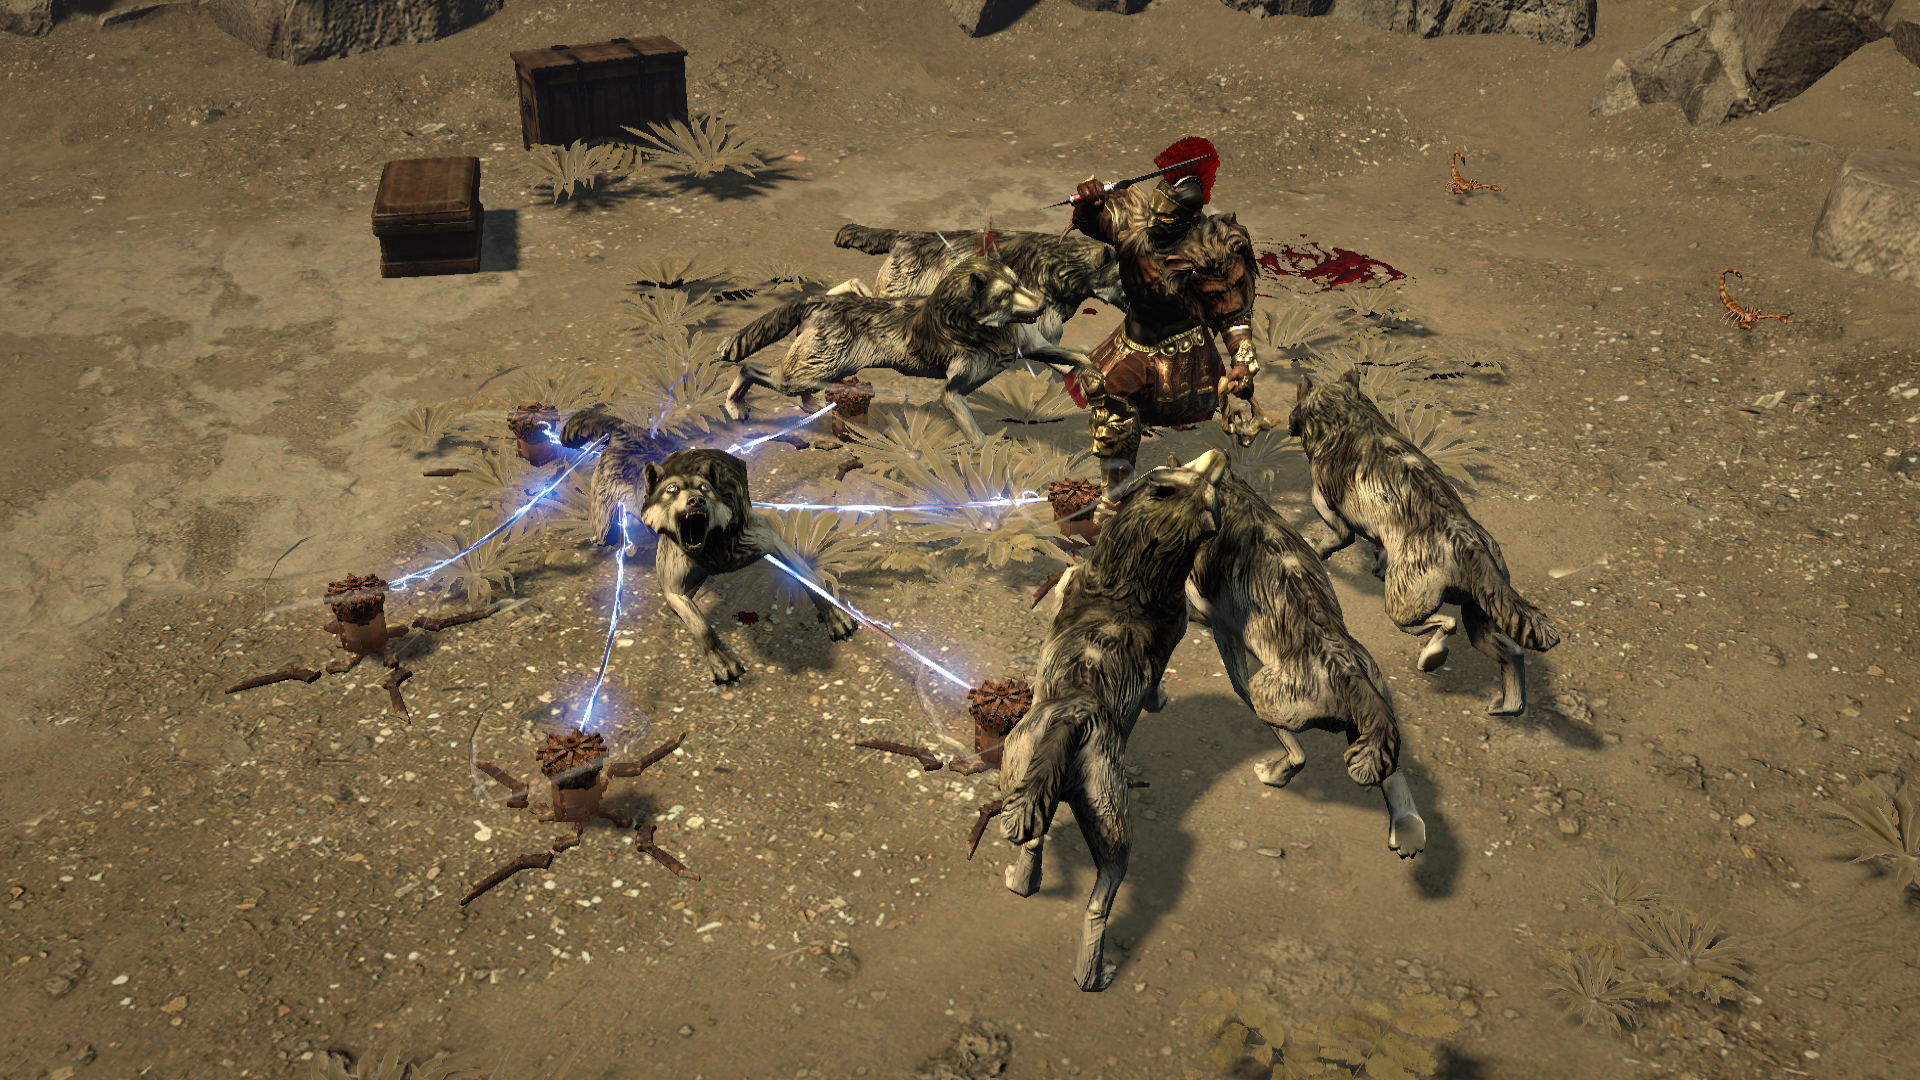 Path of Exile: Bestiary launches today on PC